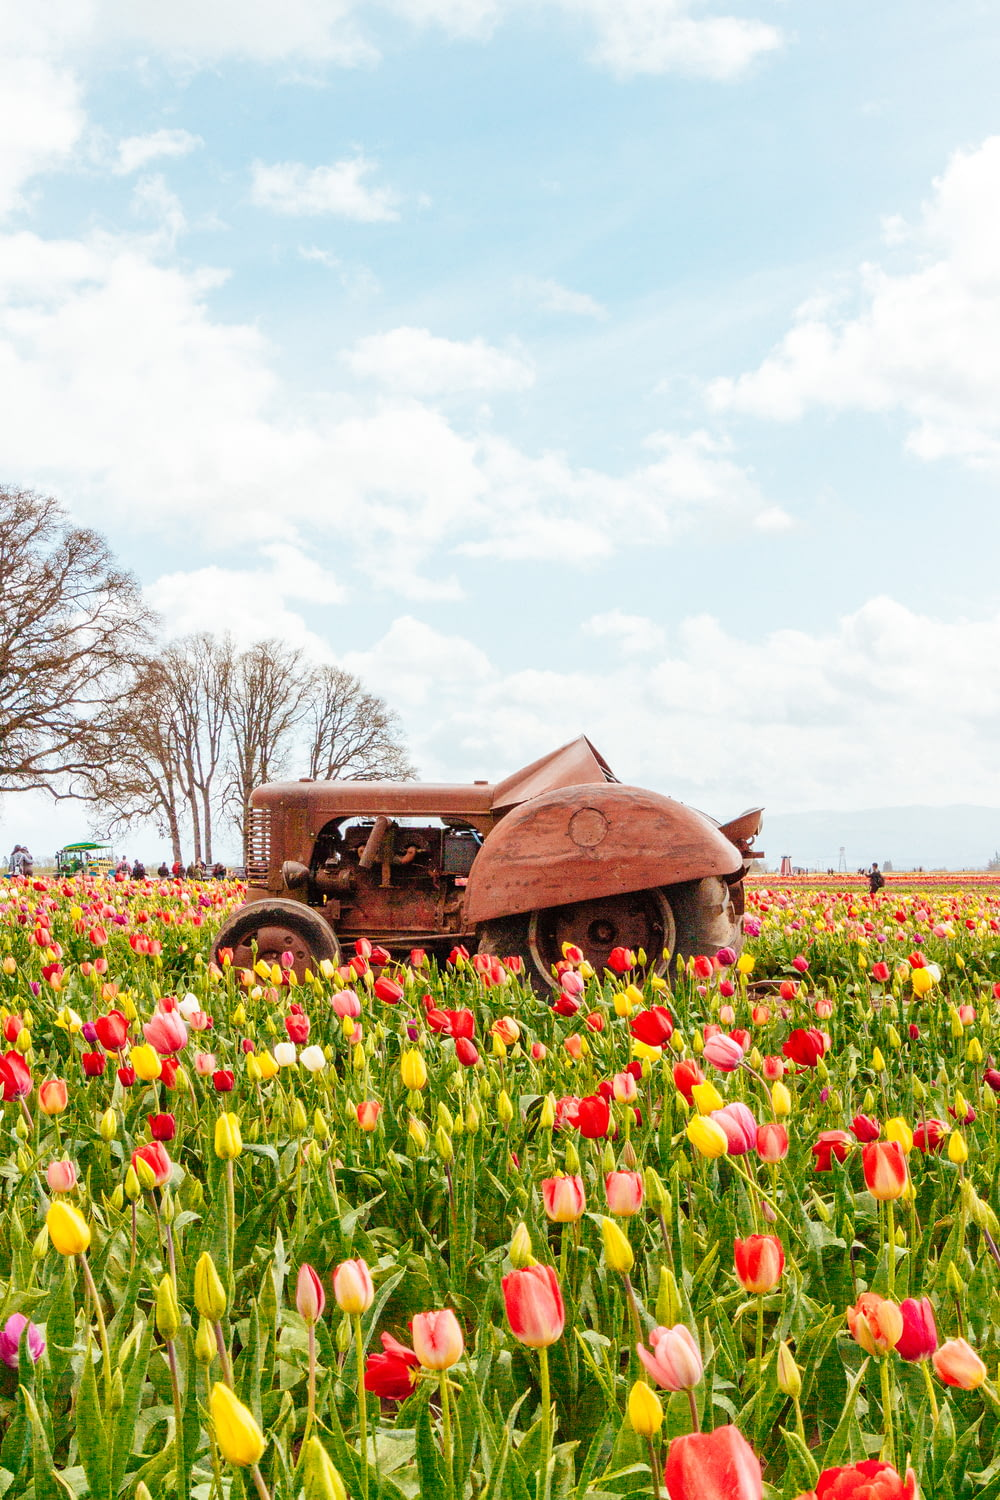 tractor on tulips field